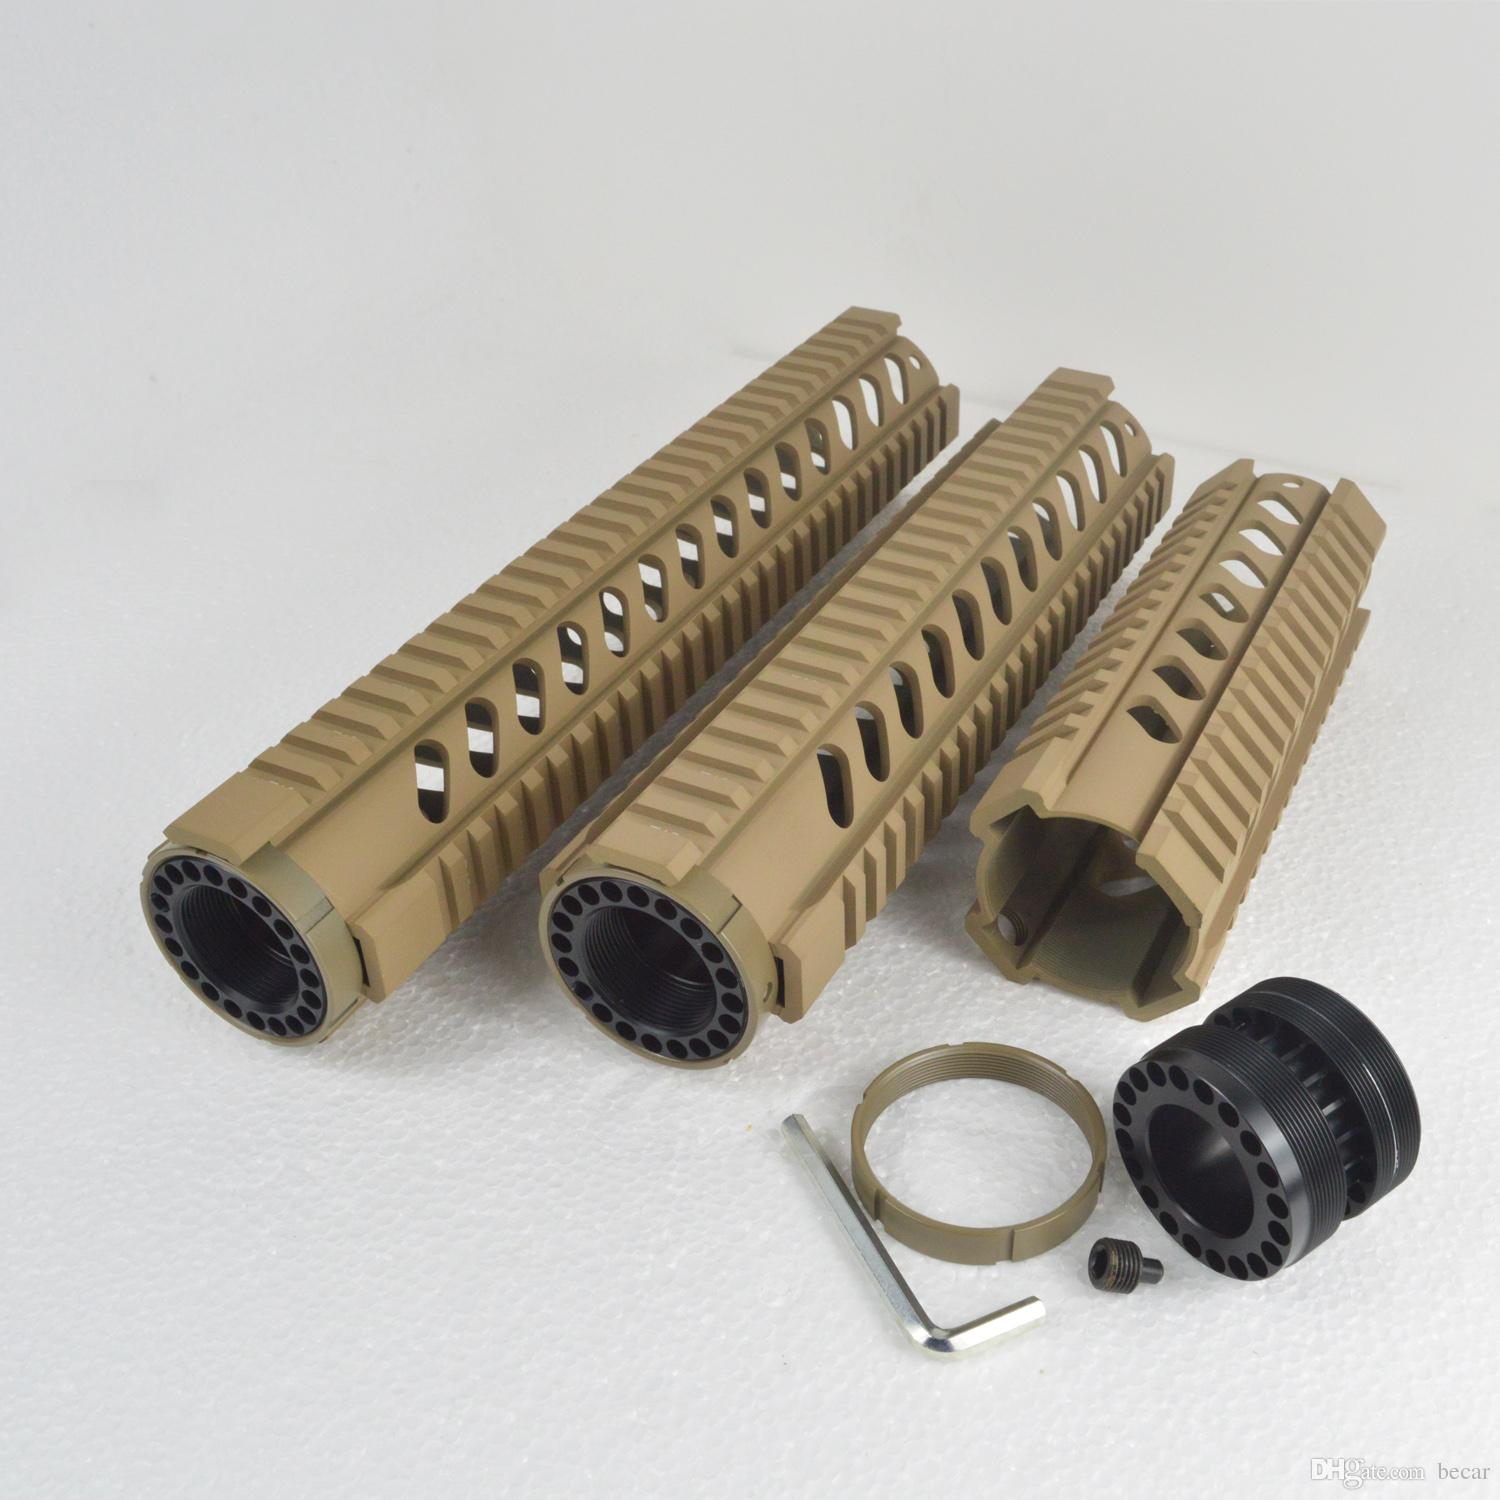 7,10,12 inch Free Float Quad Rail Handguard TAN color High quality CNC Aluminum